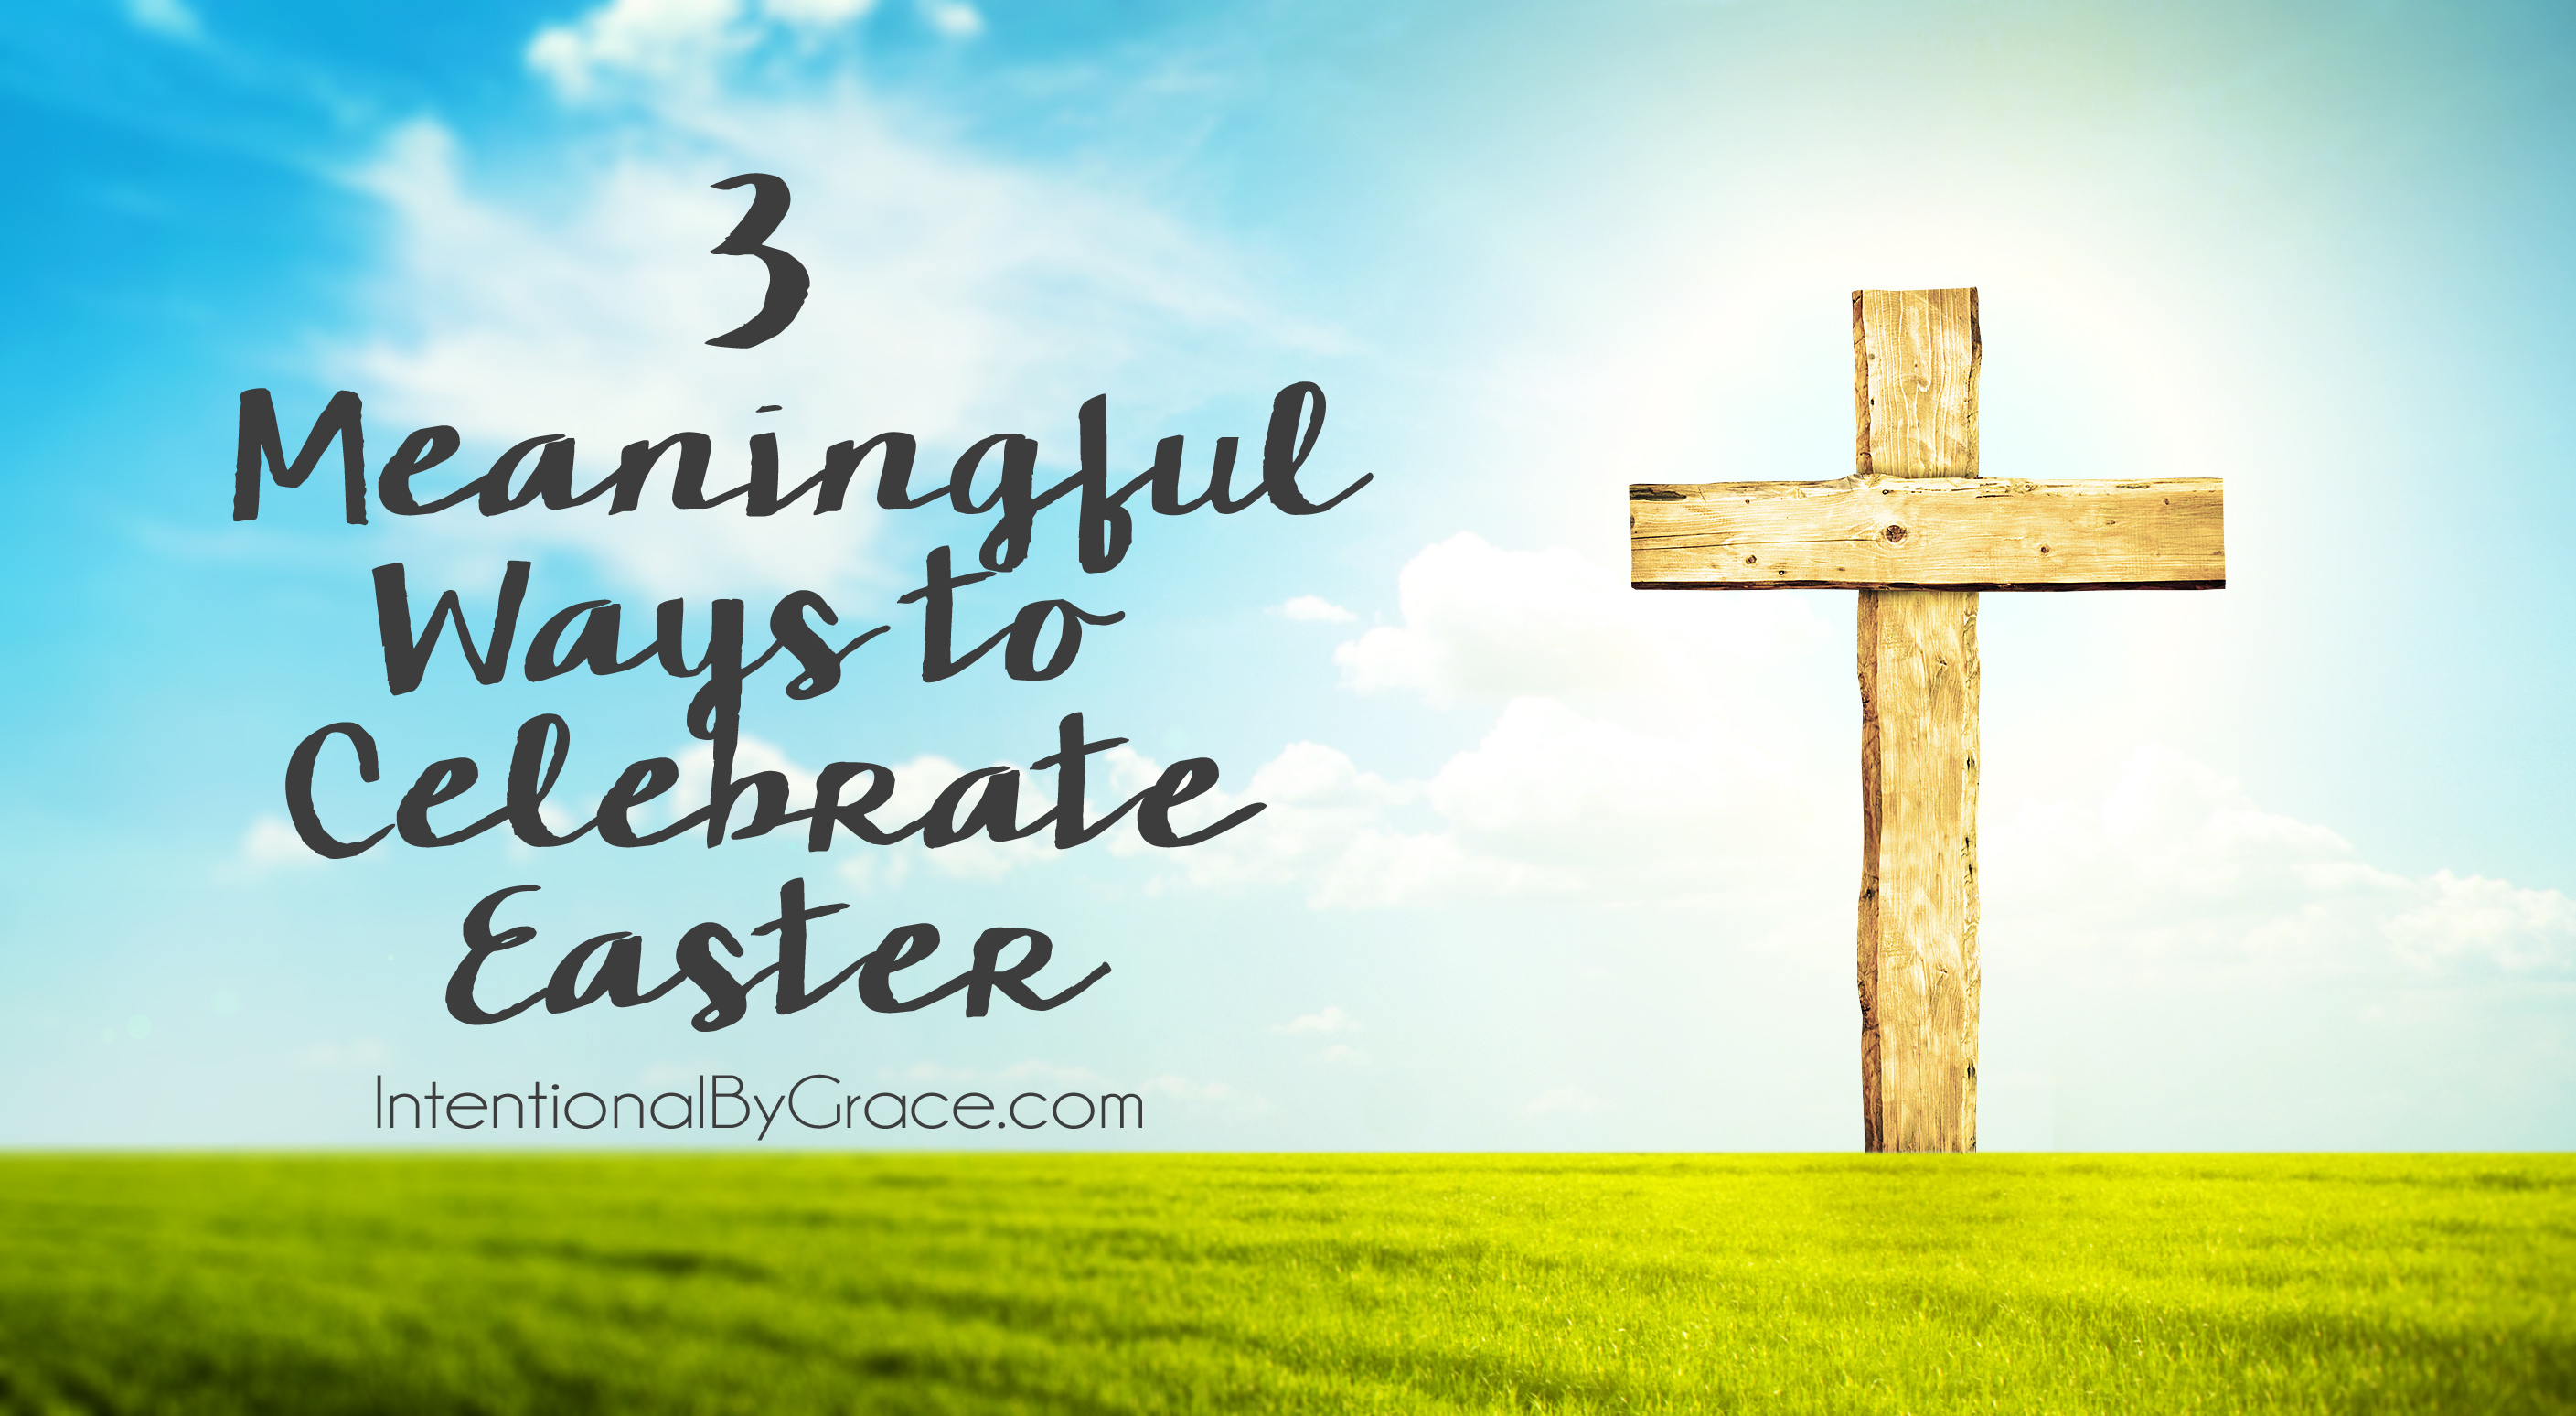 3 Meaningful Ways to Celebrate Easter